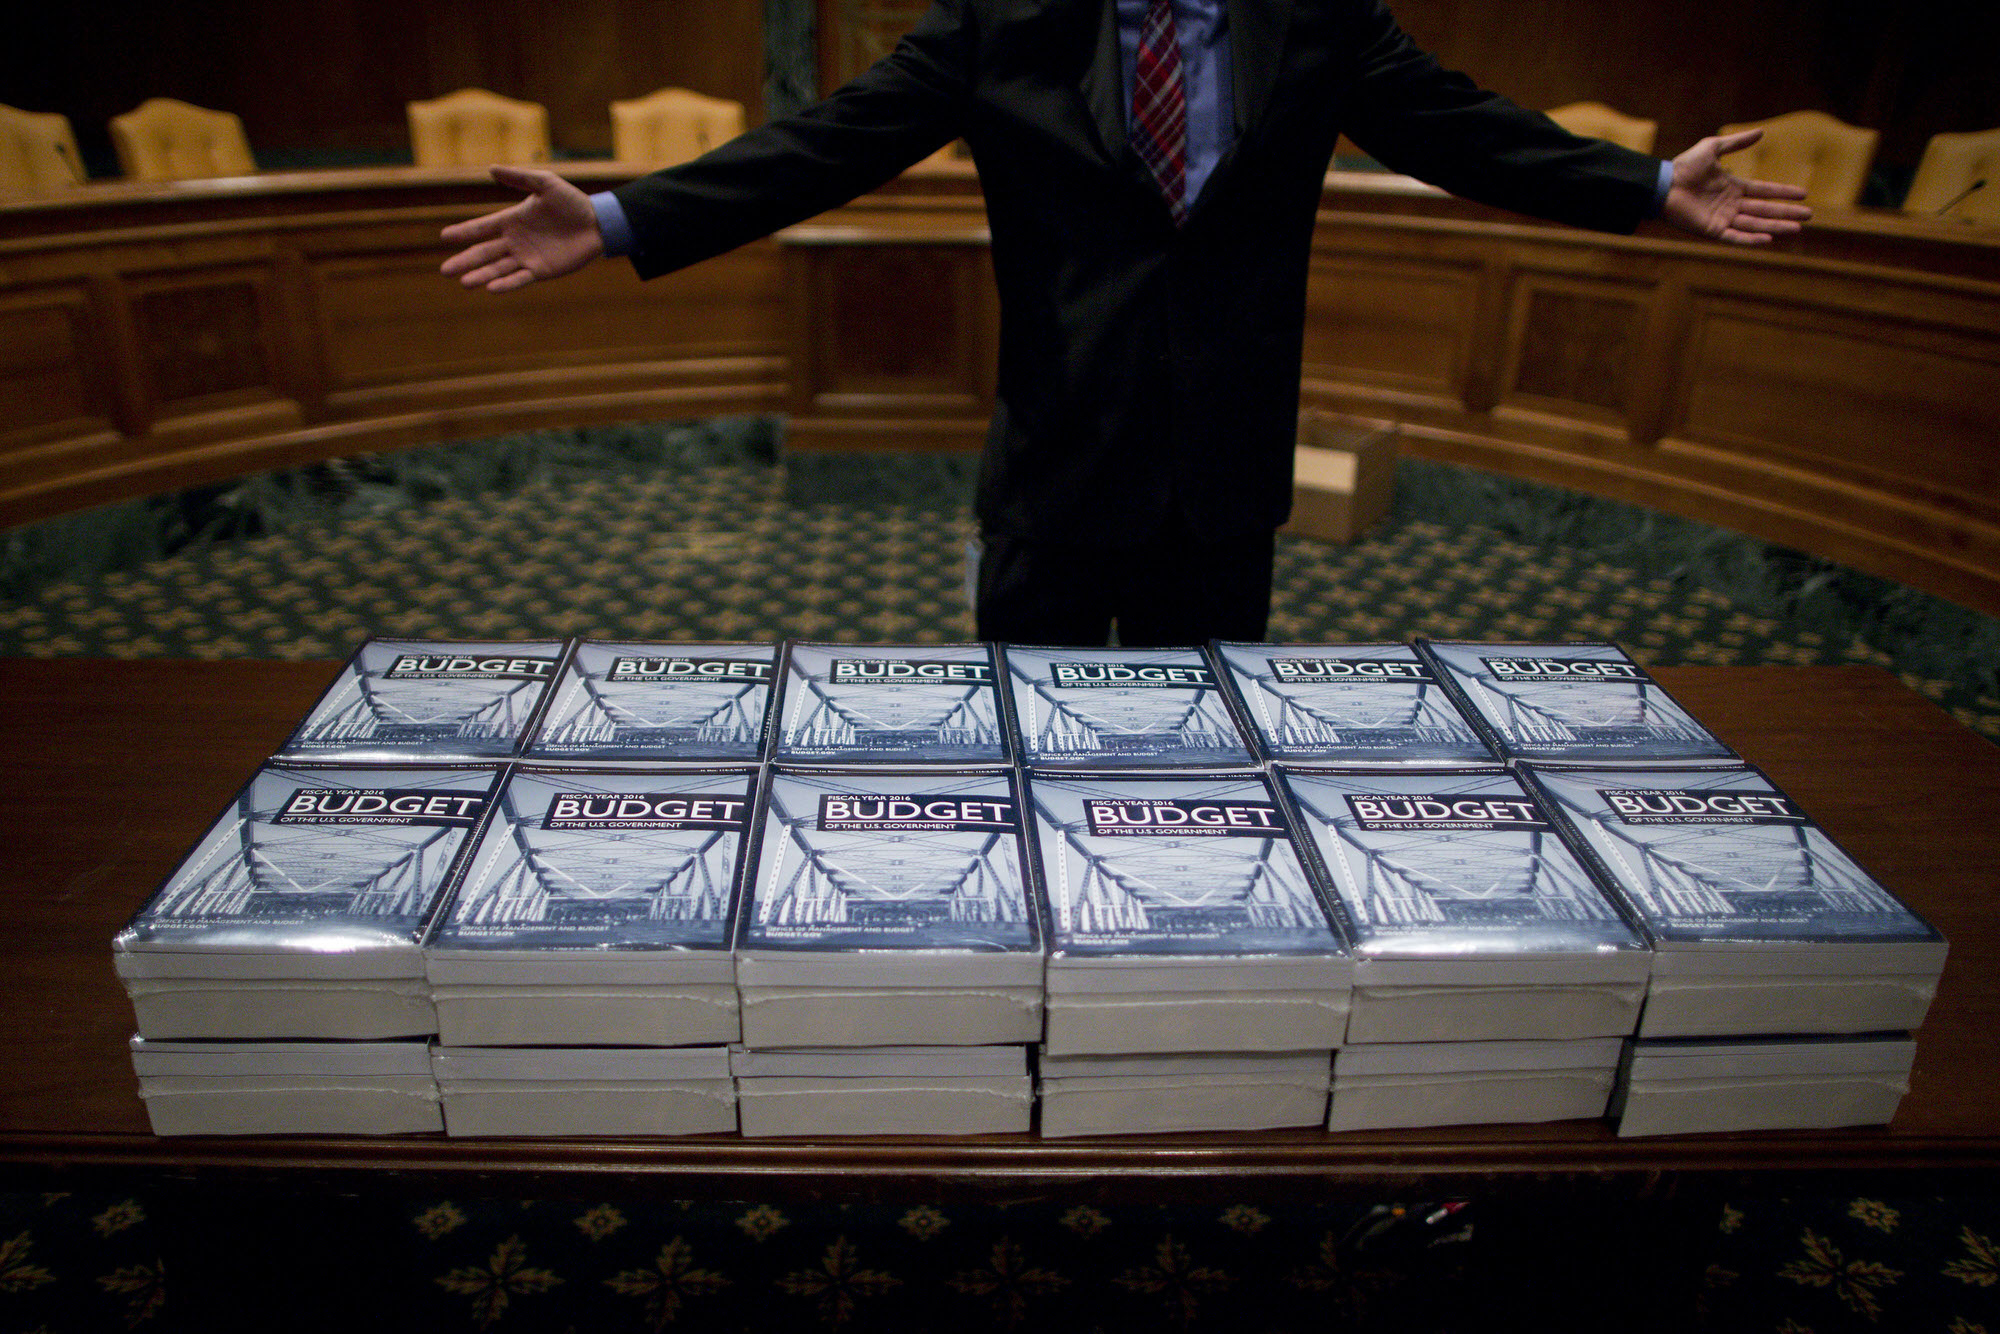 Eric Chalmers, staff assistant with the Senate Budget Committee, gestures while talking to a staff member behind copies of U.S. President Barack Obama's Fiscal Year 2016 Budget arranged on a table at the Senate Budget Committee hearing room in Washington, D.C., U.S., on Monday, Feb. 2, 2015. Photographer: Andrew Harrer/Bloomberg